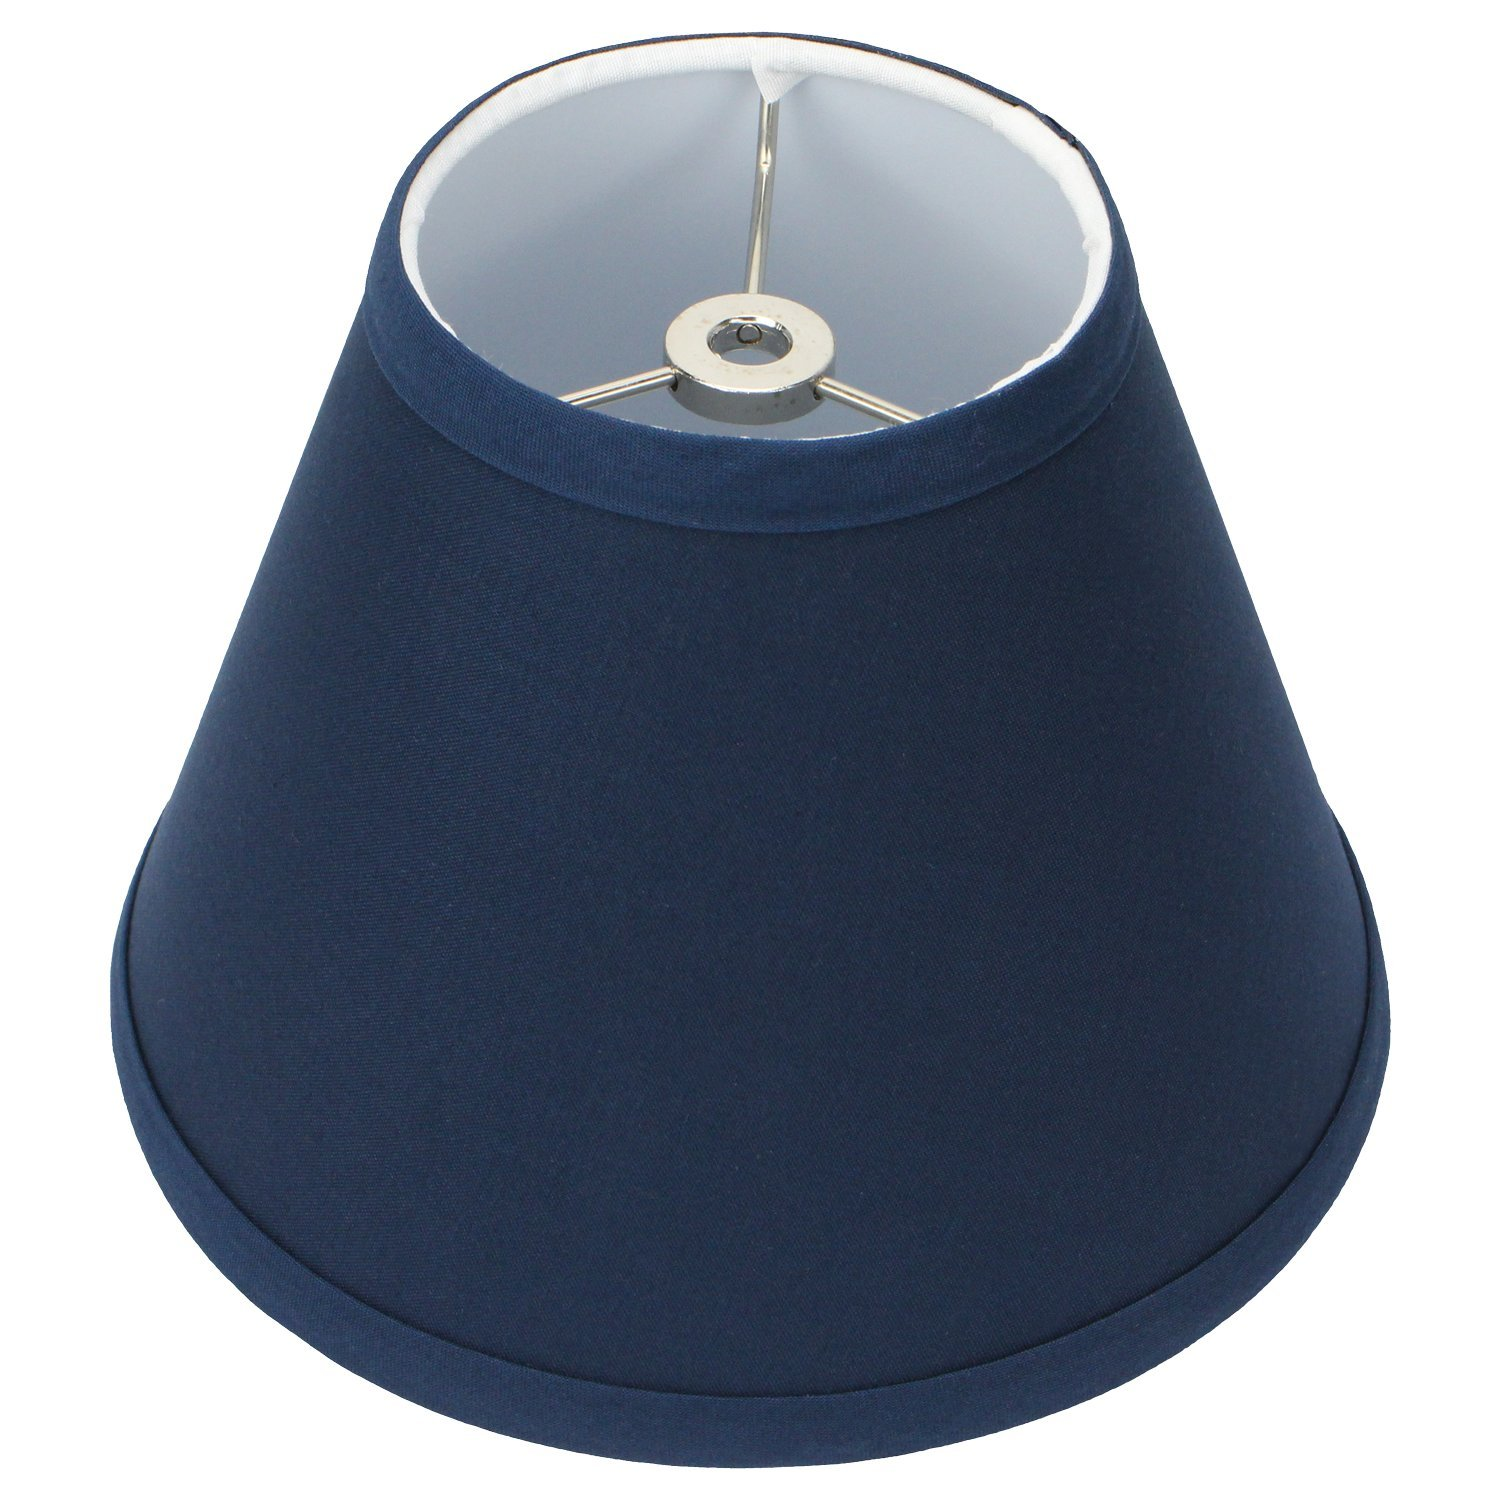 Cheap navy lamp shade find navy lamp shade deals on line at alibaba get quotations fenchelshades lamp shade 4x8x6 navy blue linen fabric this item does not clip aloadofball Gallery